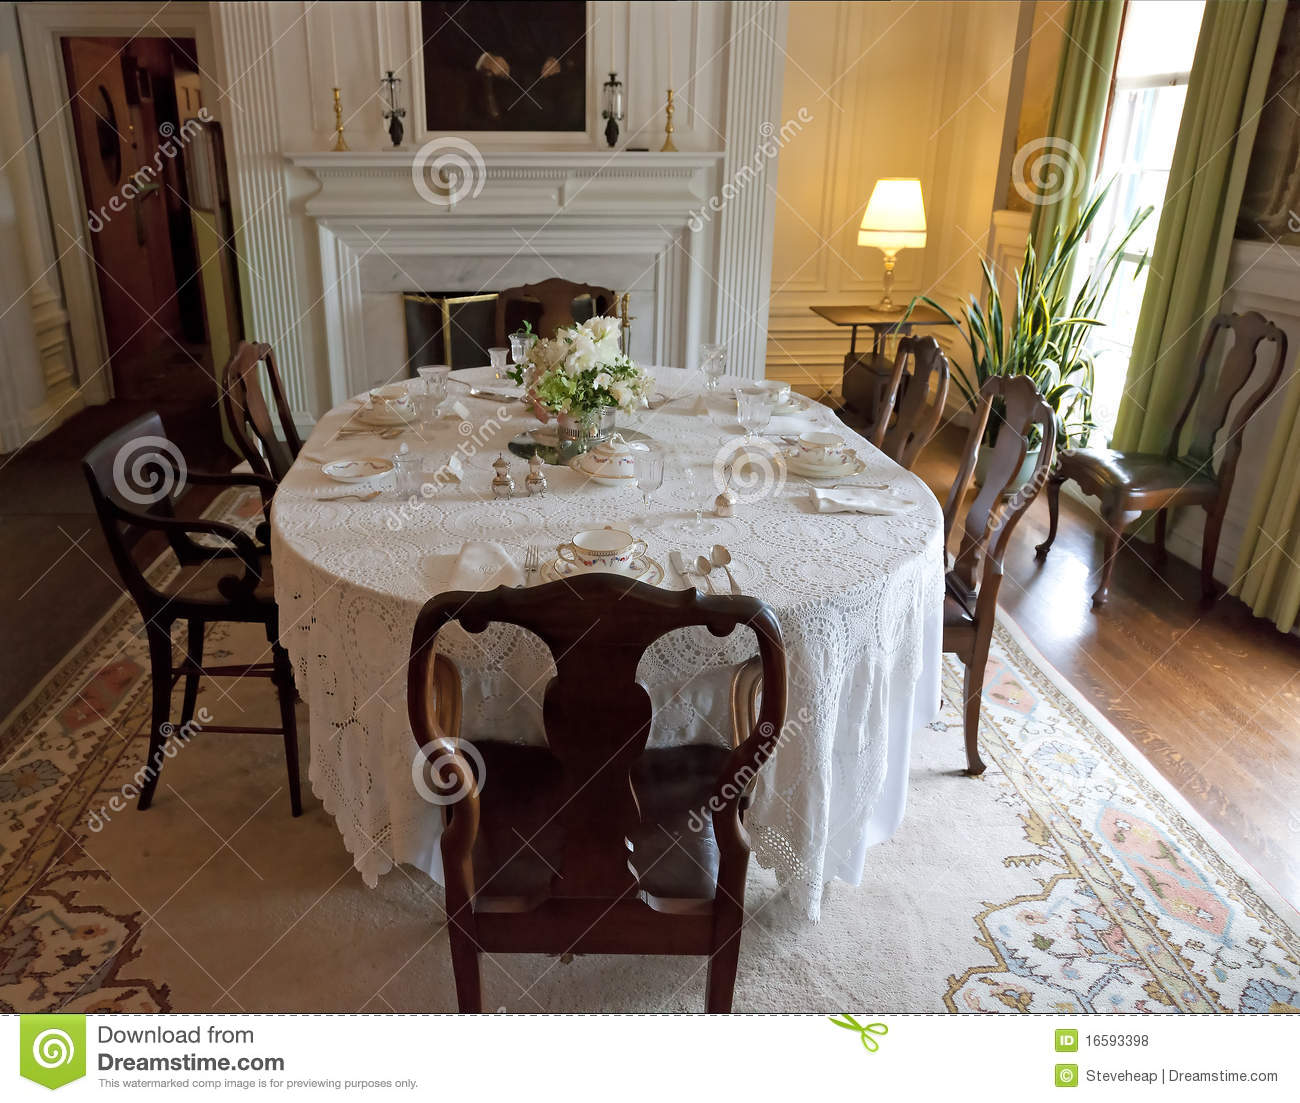 Old fashioned dining room royalty free stock photos for Old fashioned dining room tables